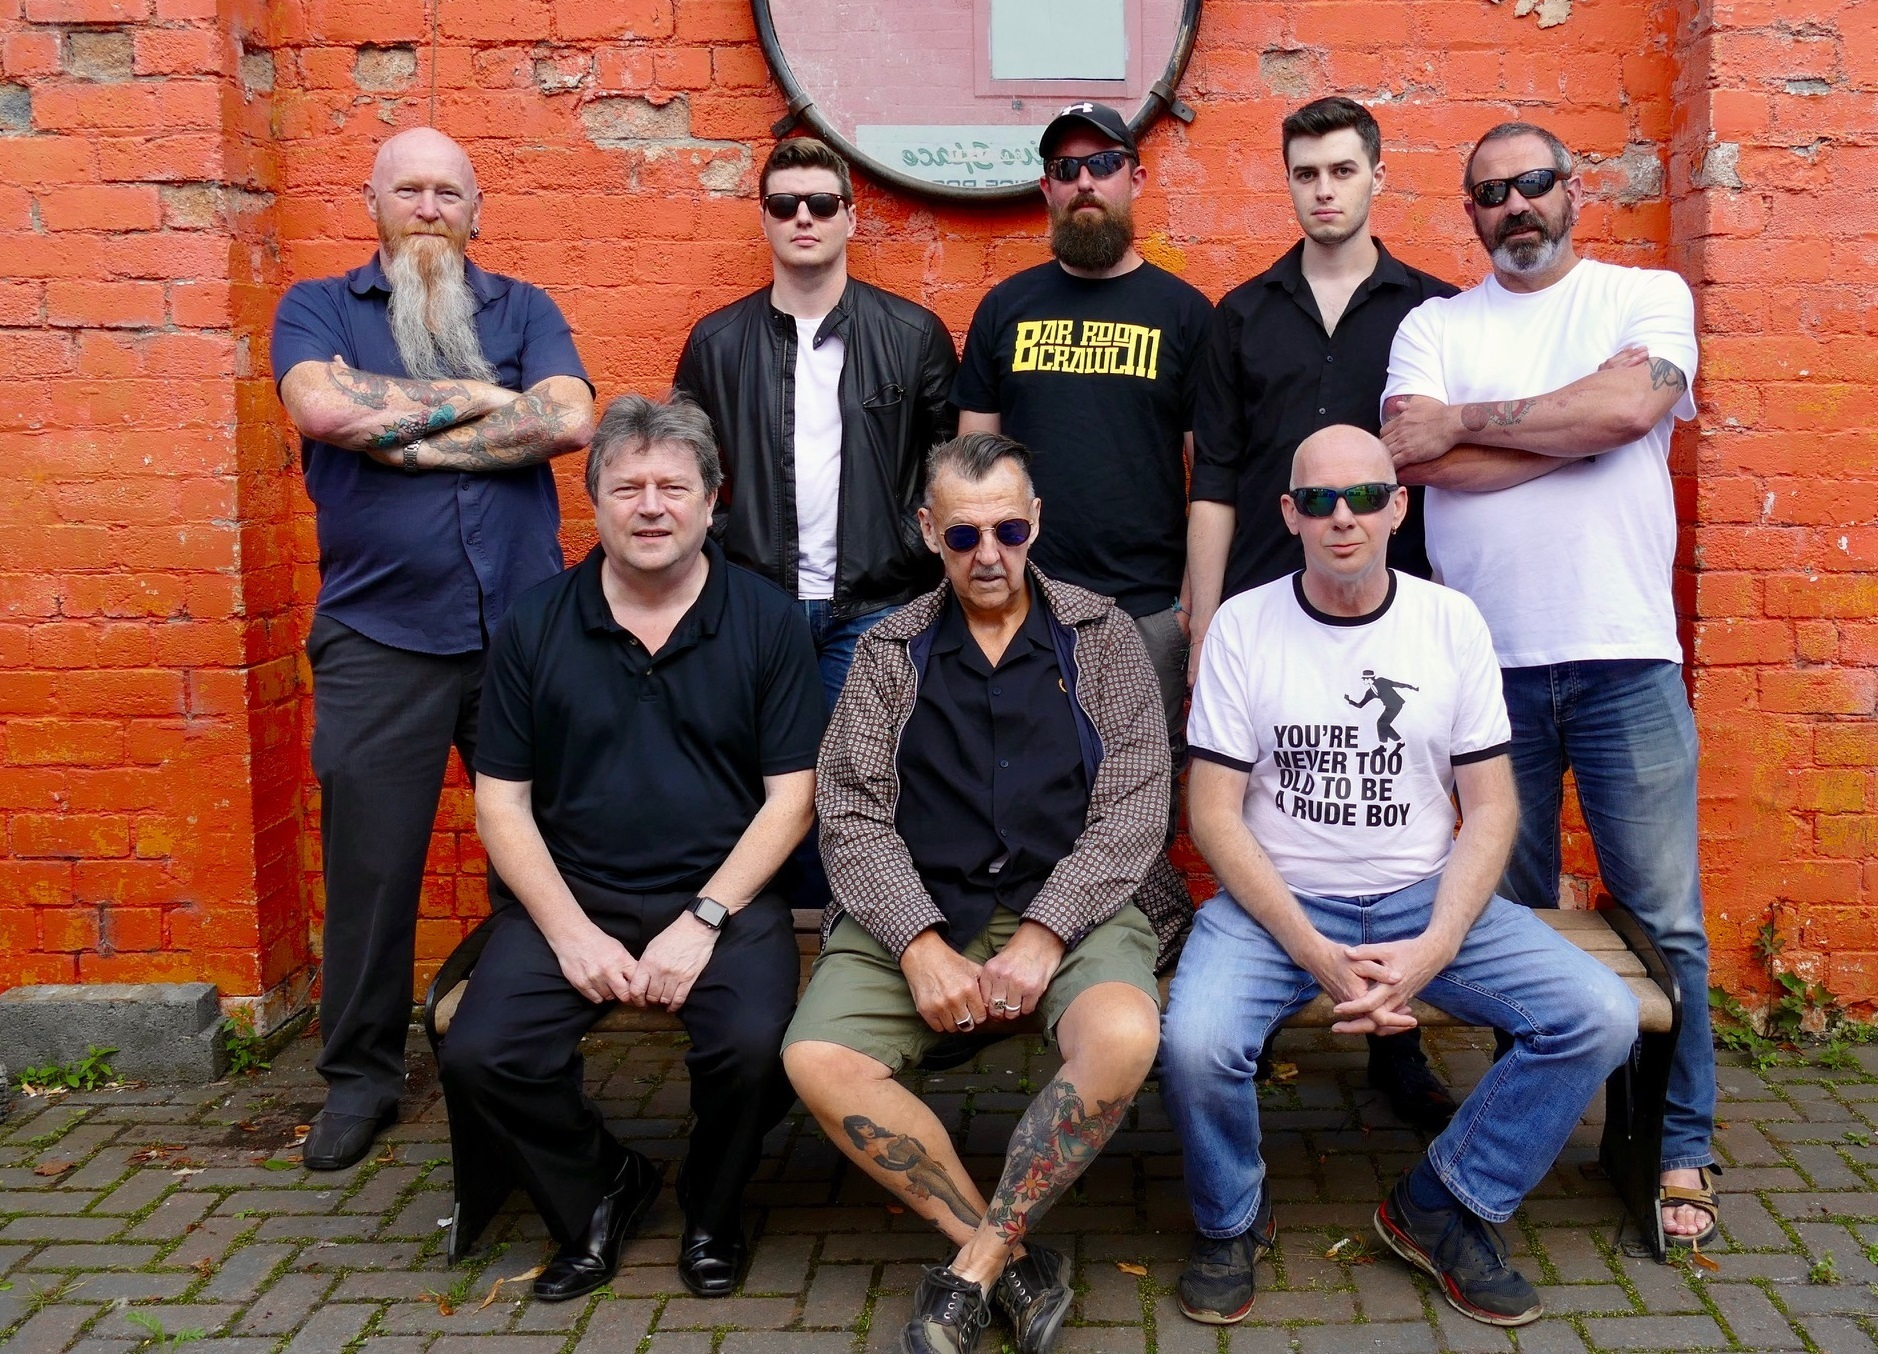 The Rude Boys will be at Craigie Hill Music Festival.